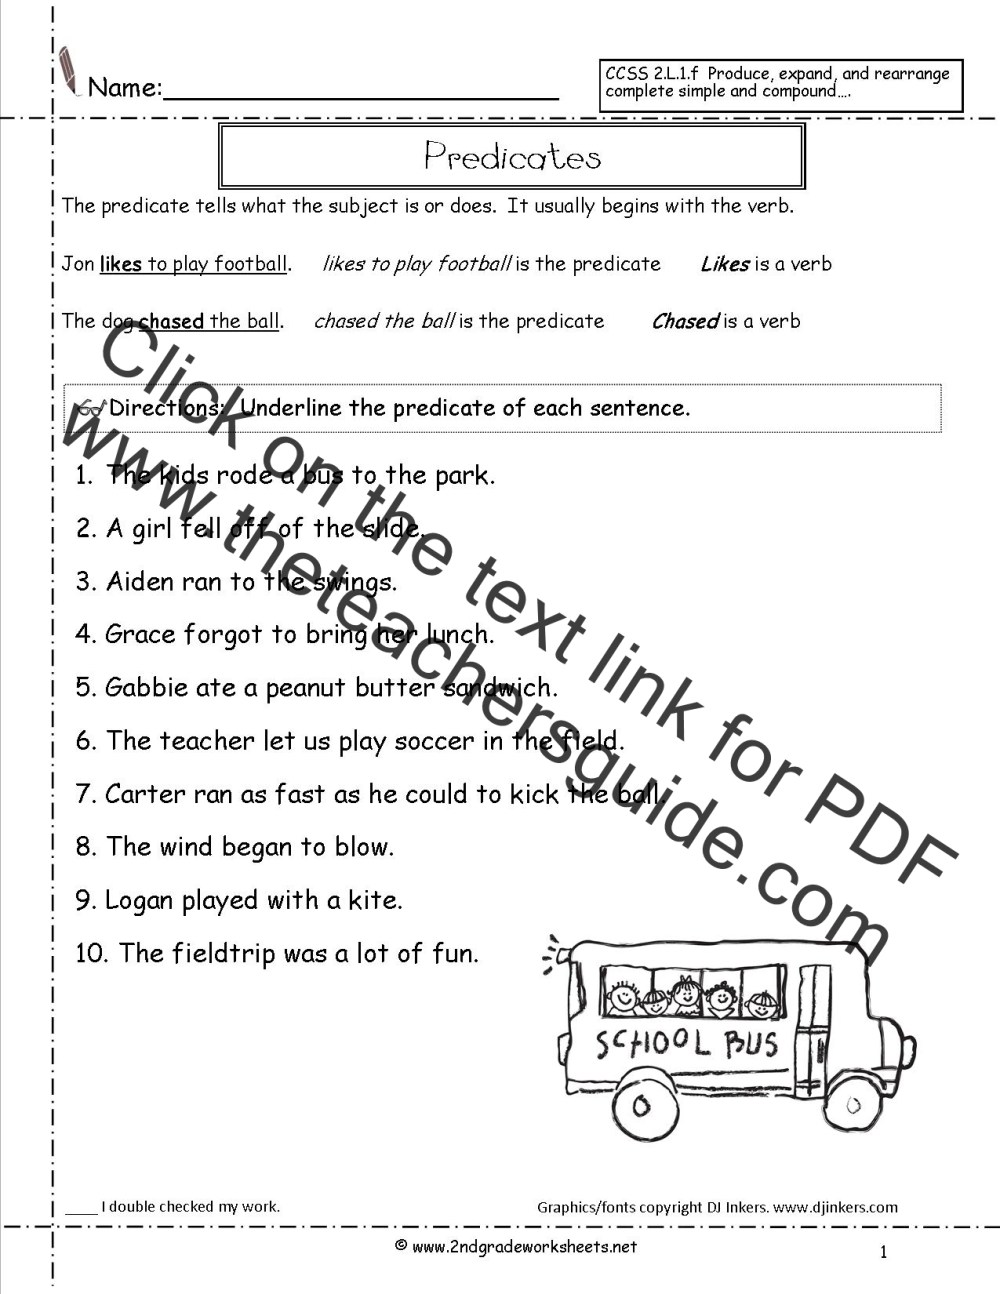 medium resolution of 4th Grade Subject And Predicate Worksheet - Nidecmege